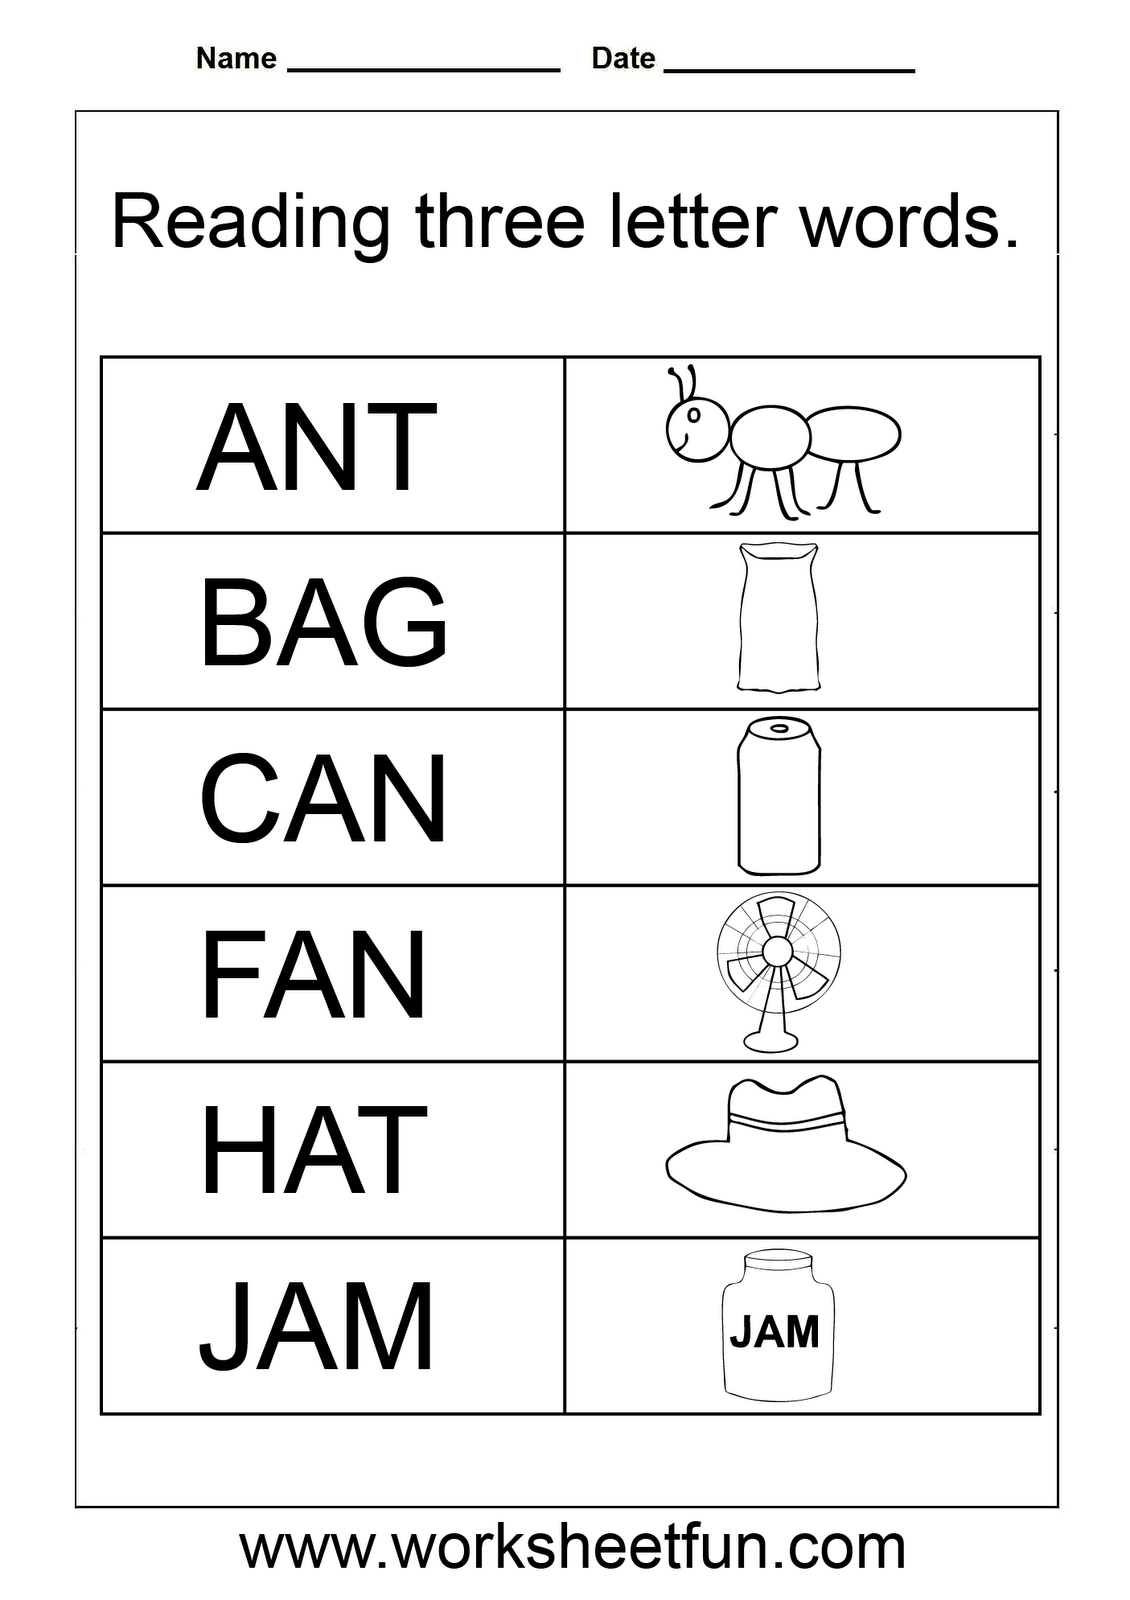 3 3 Letter Words Reading Worksheets In